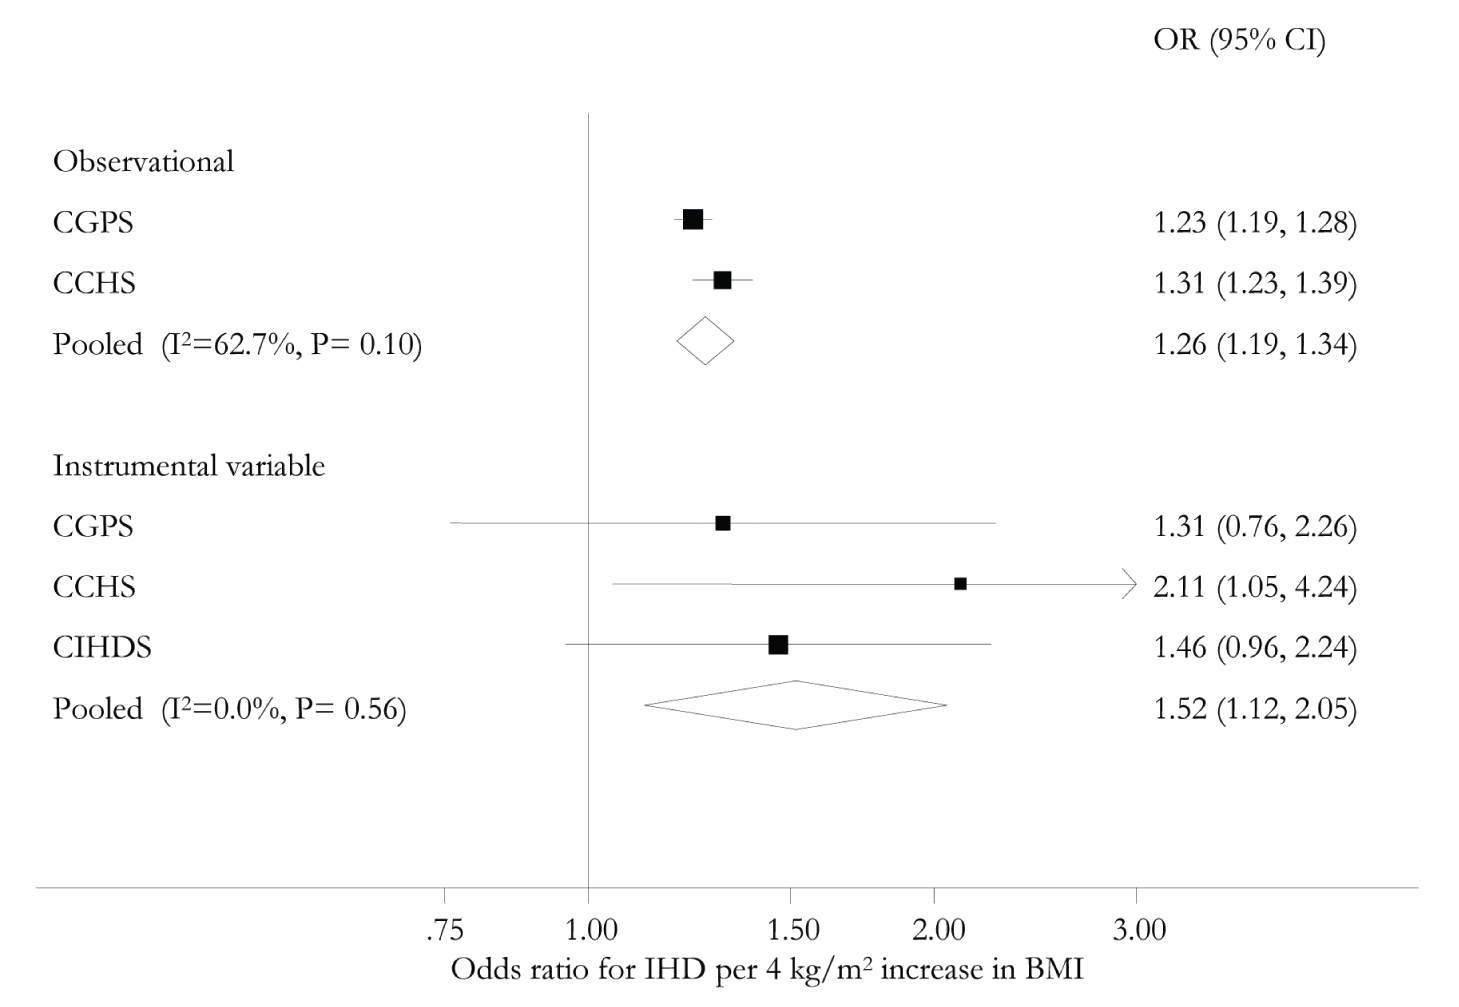 Meta-analysis forest plots of observational and instrumental variable causal estimates using allele score of the relationship between IHD and BMI.